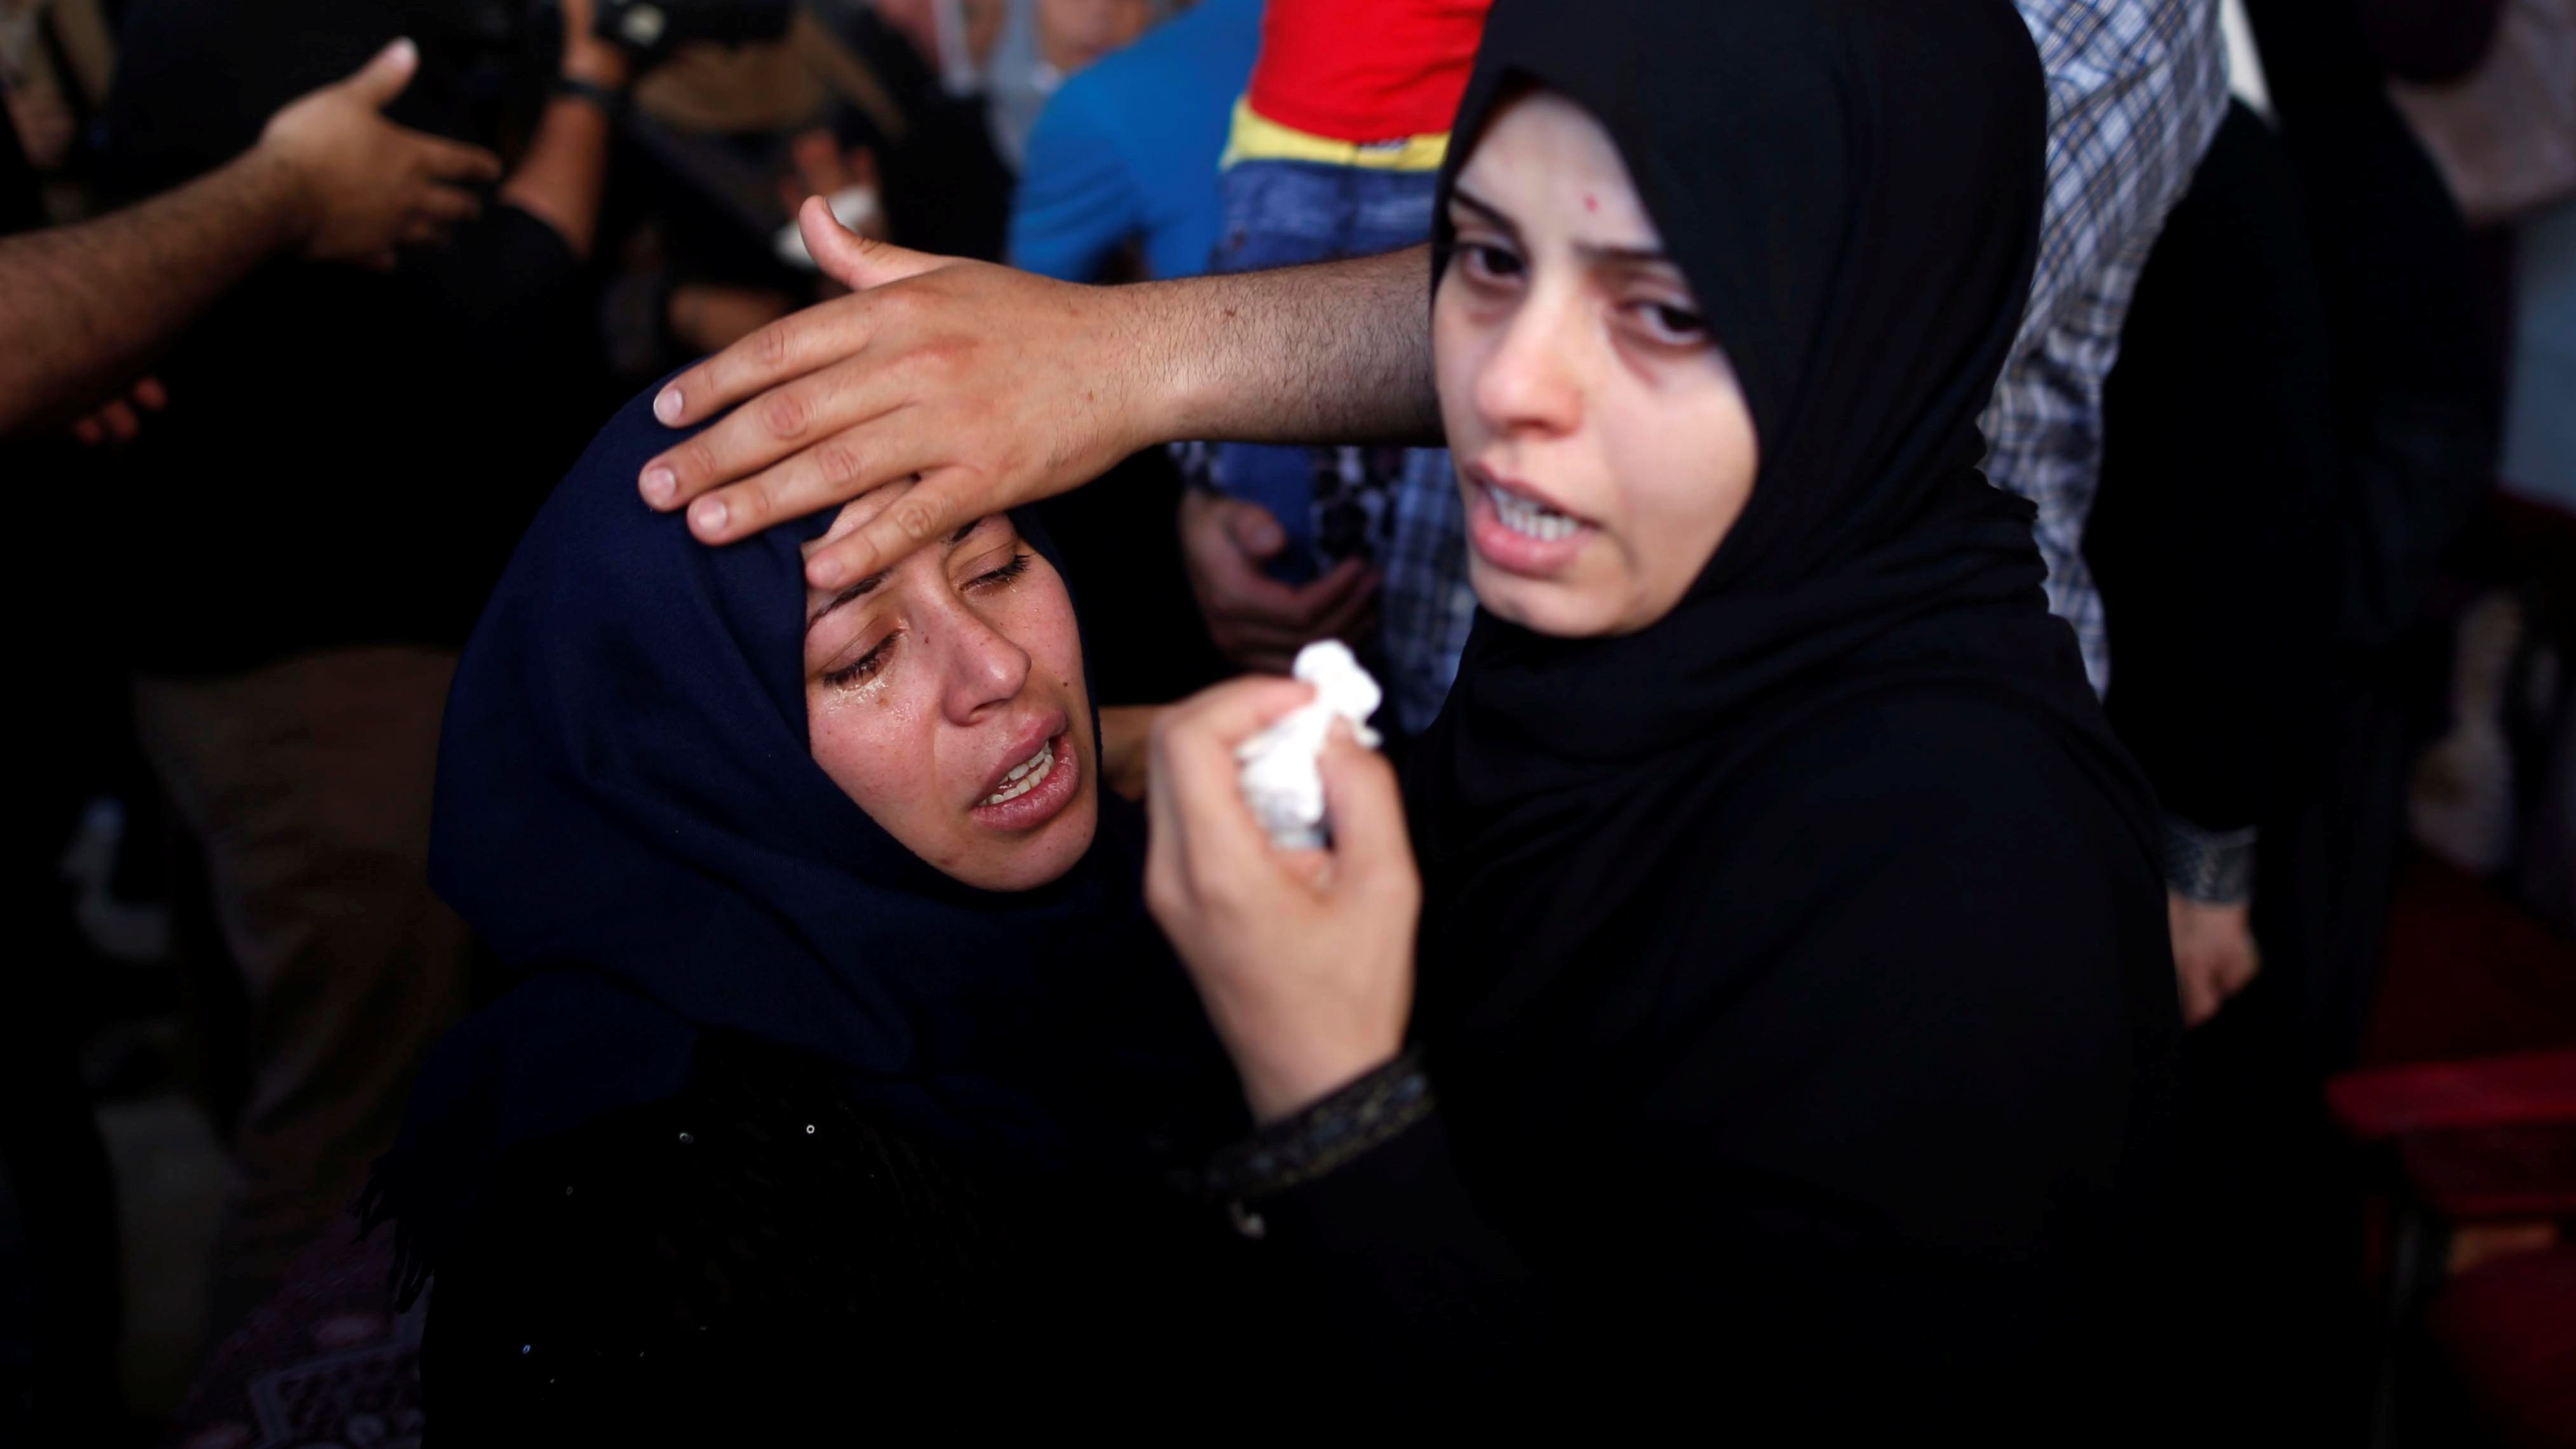 Relatives mourn during the funeral of a Palestinian, who was killed during a protest at the Israel-Gaza border, in the central Gaza strip May 16, 2018.